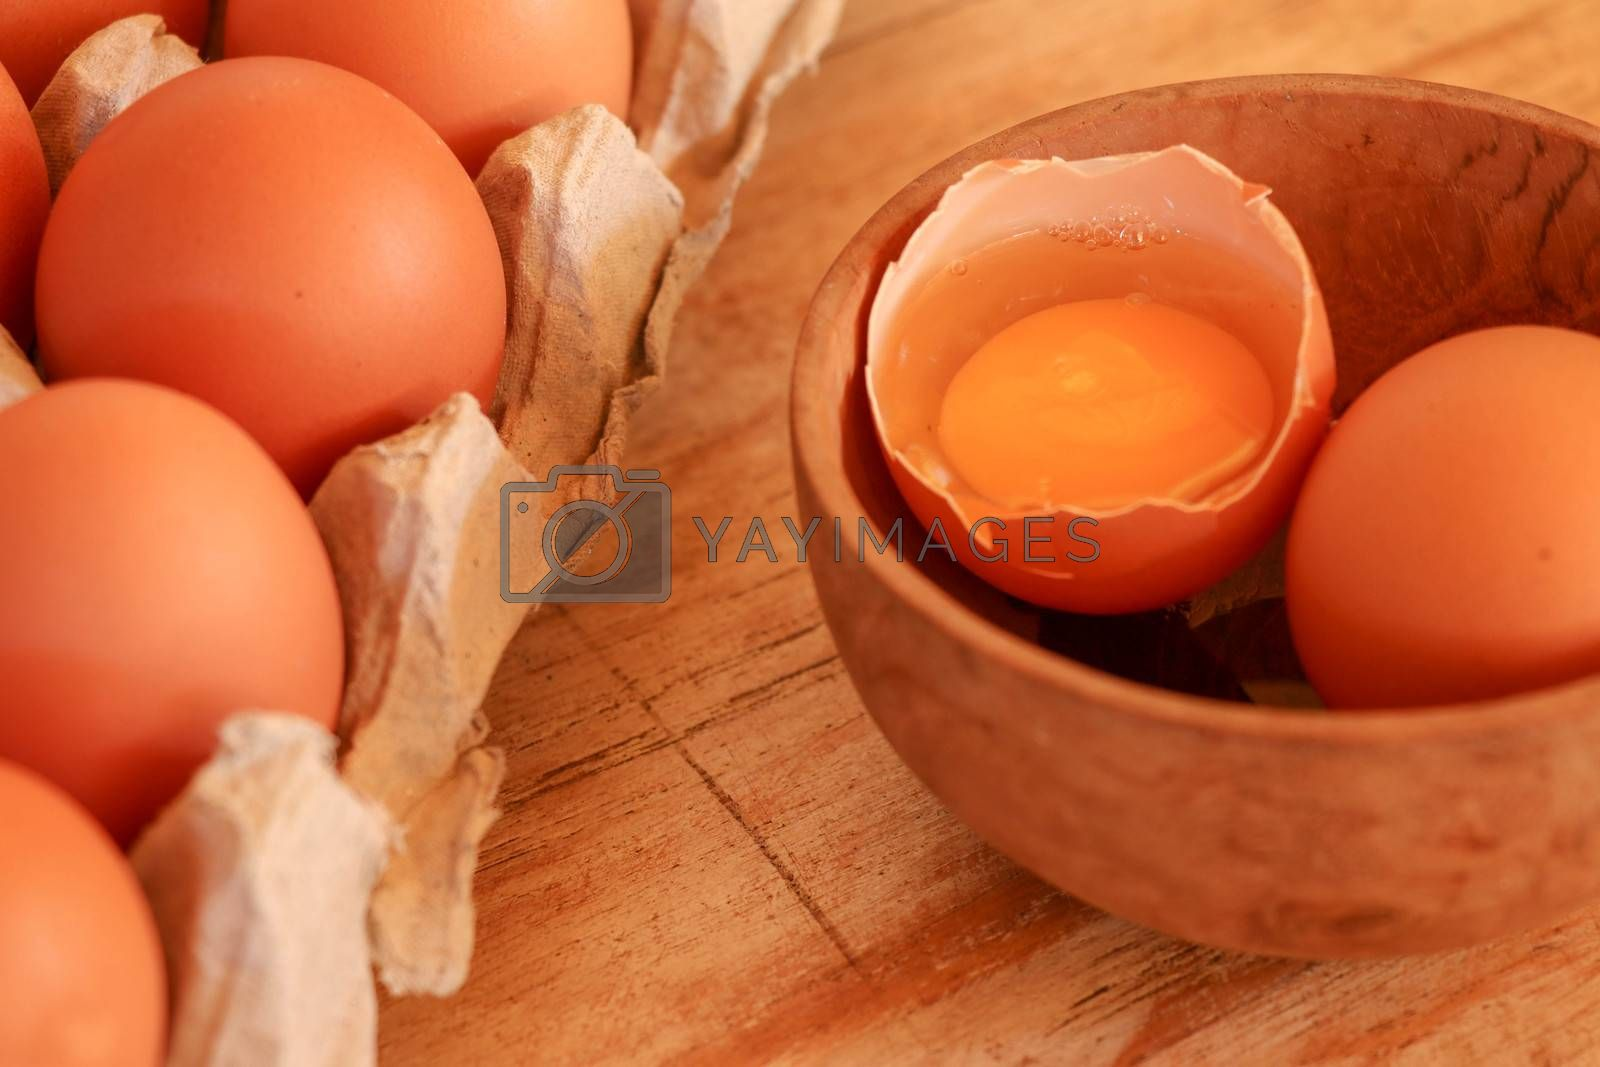 Cracked egg in bowl and egg shells on wooden table.